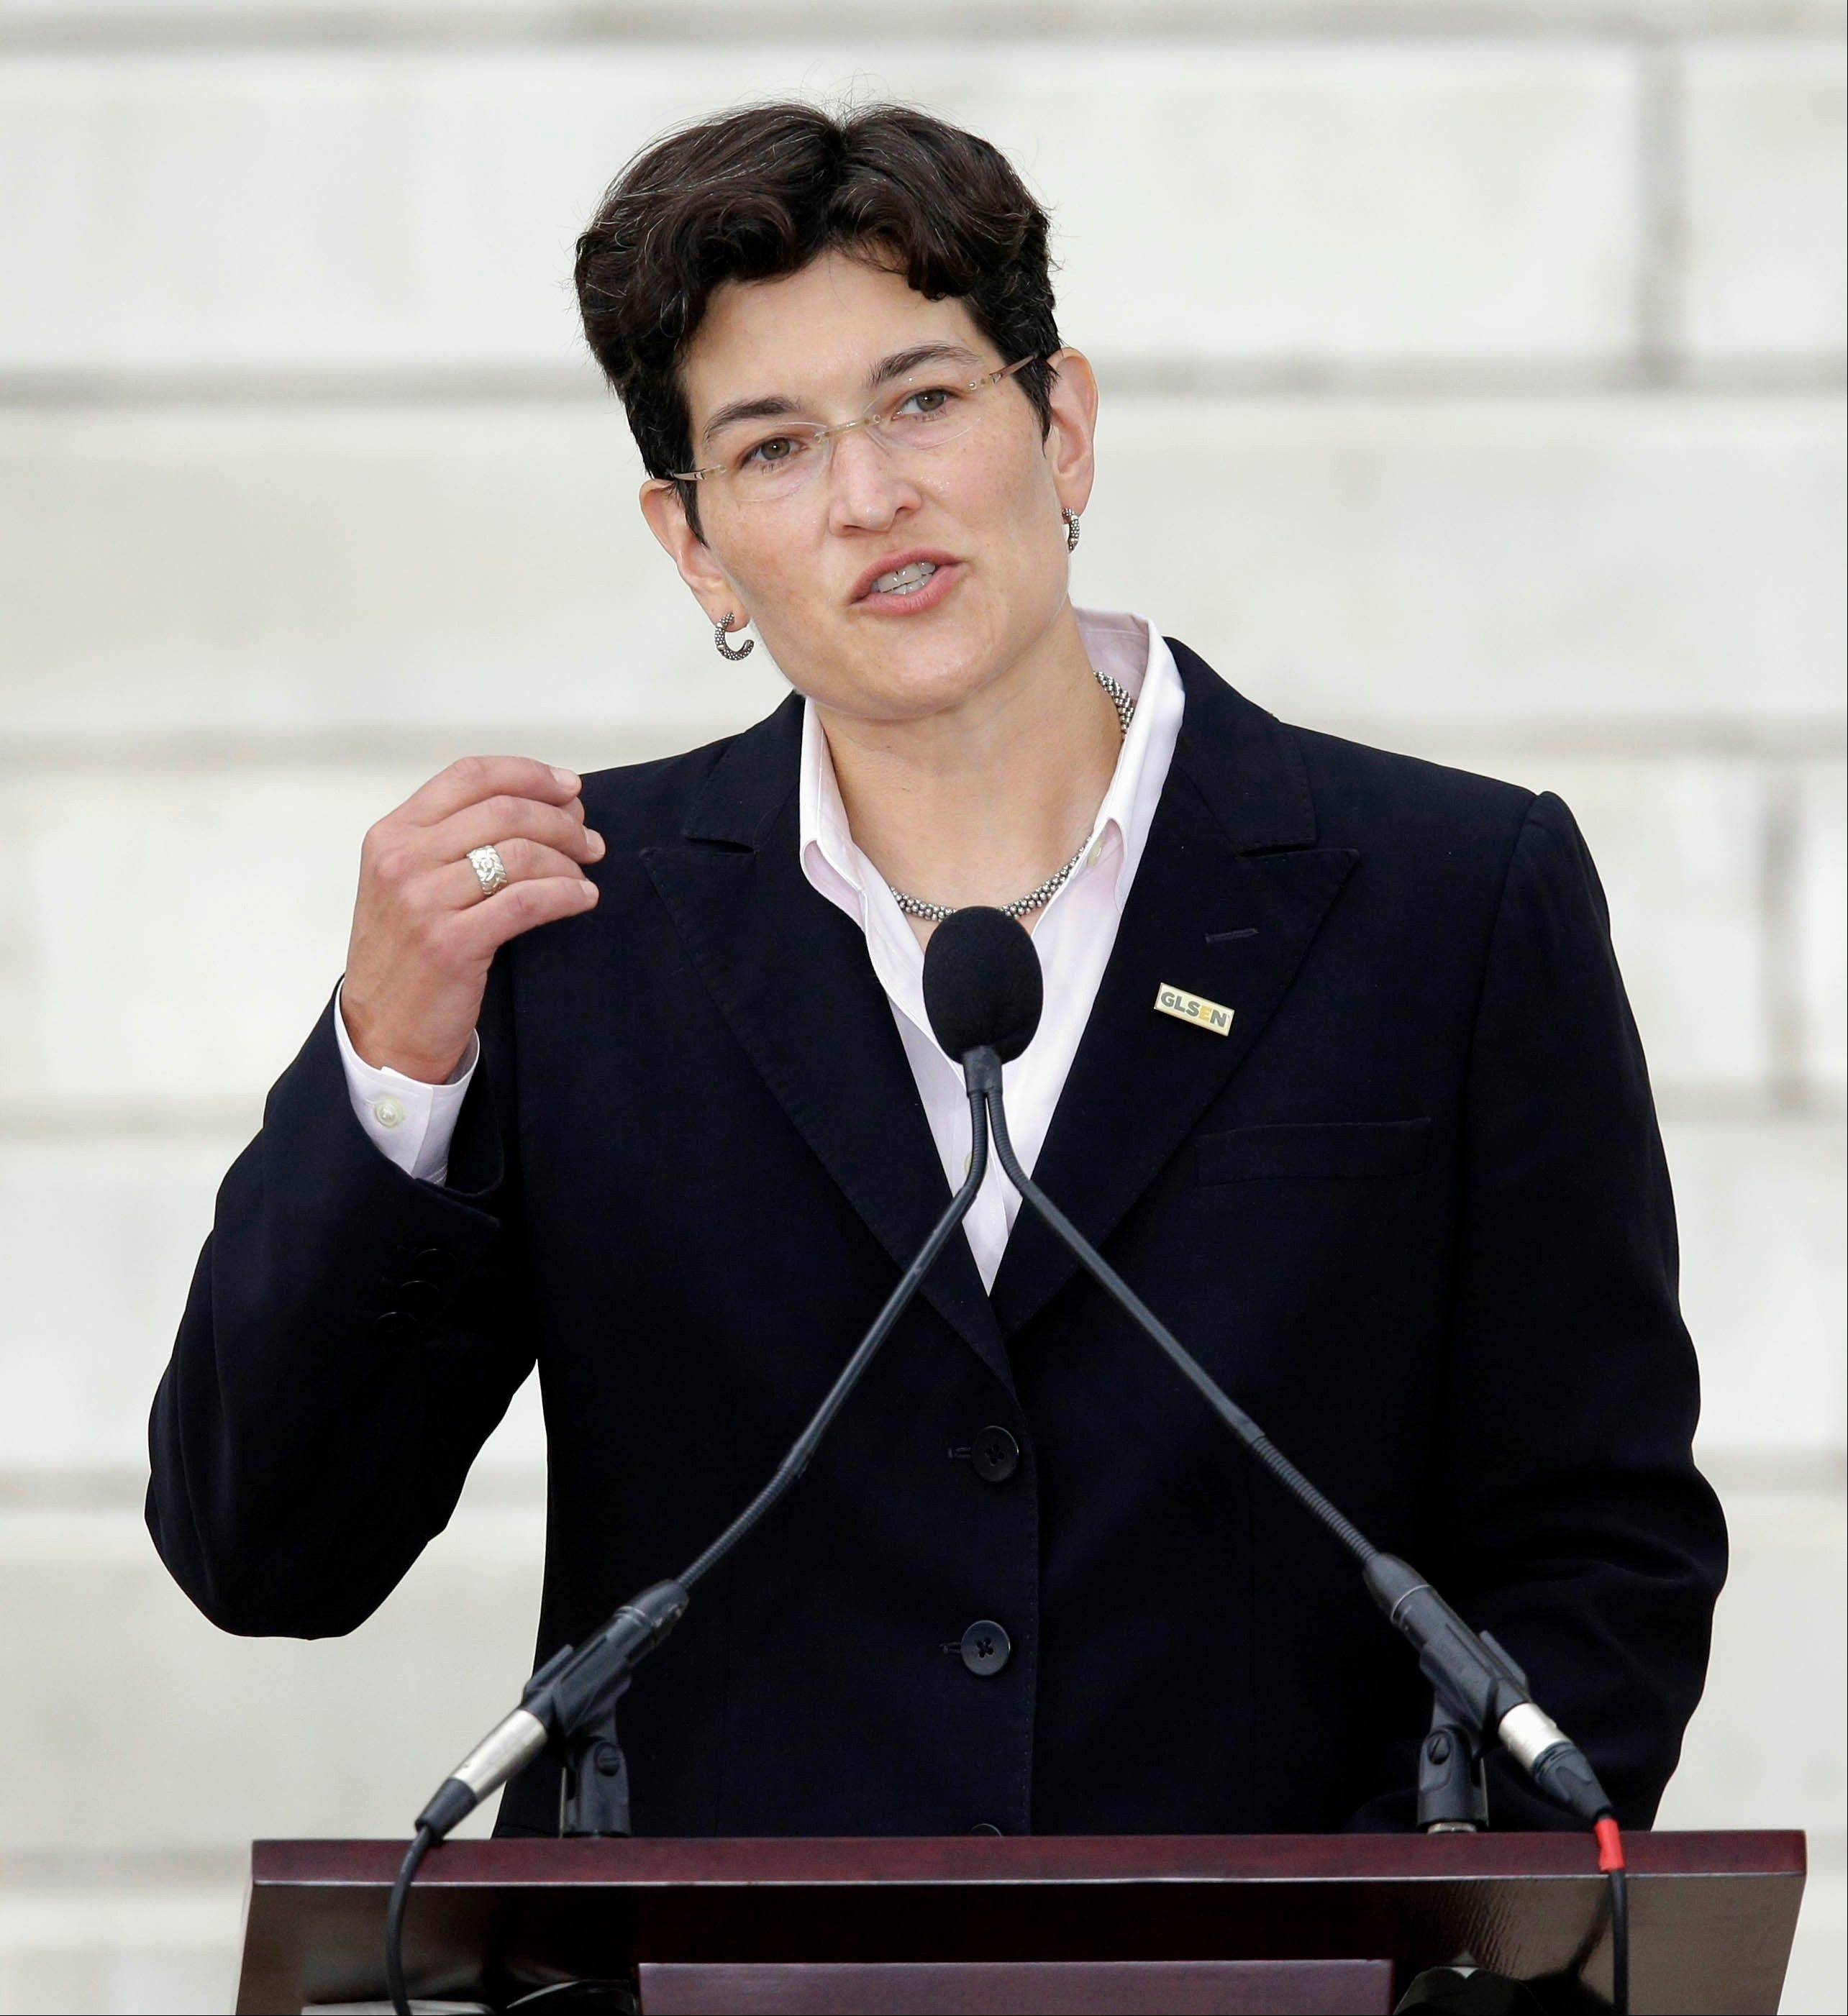 Eliza Byard, executive director of the Gay, Lesbian & Straight Education Network, speaks at the Let Freedom Ring ceremony at the Lincoln Memorial in Washington on Wednesday.